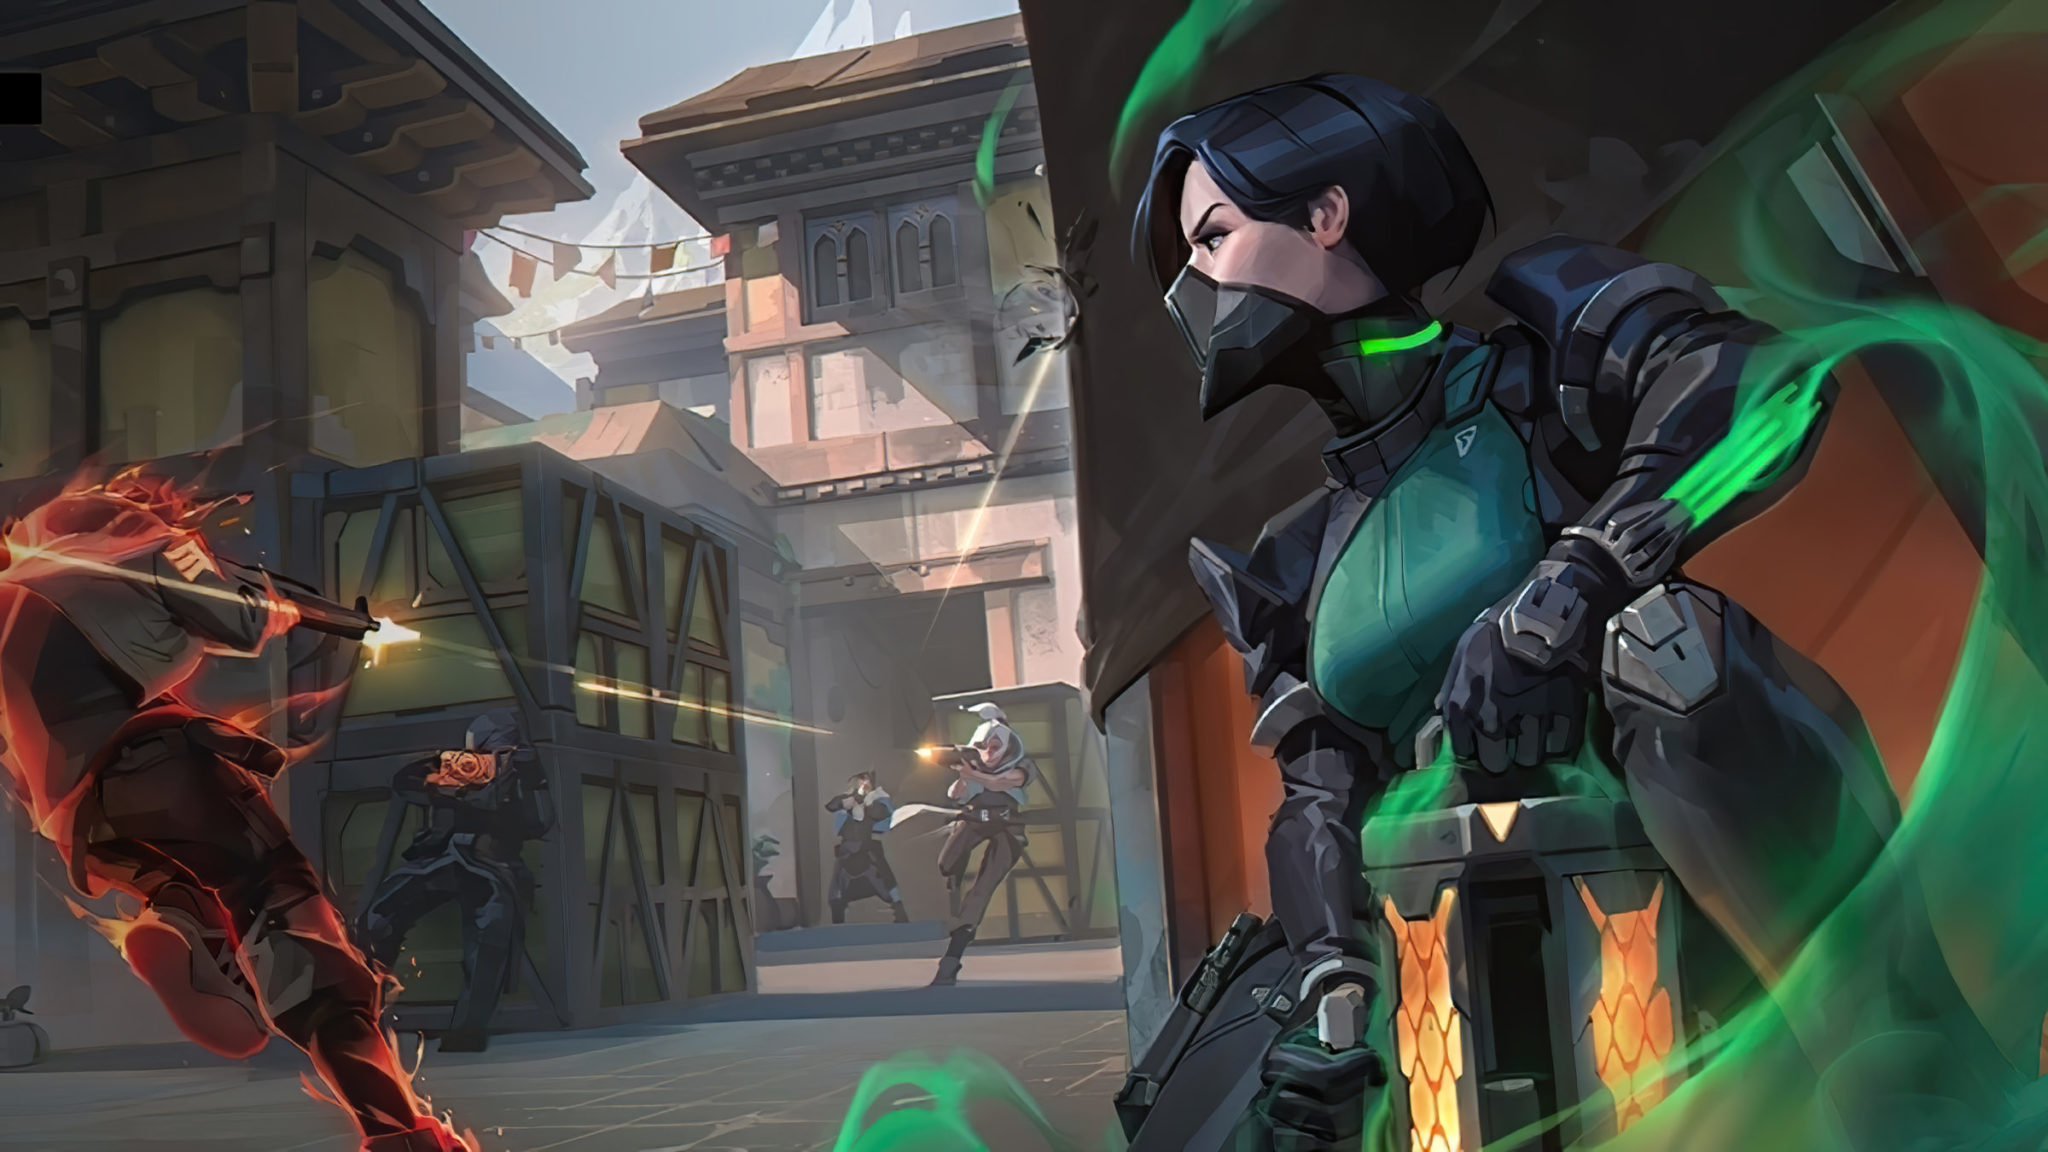 Overwatch figurehead Jeff Kaplan seems to have been inspired by Riot's Valorant title.